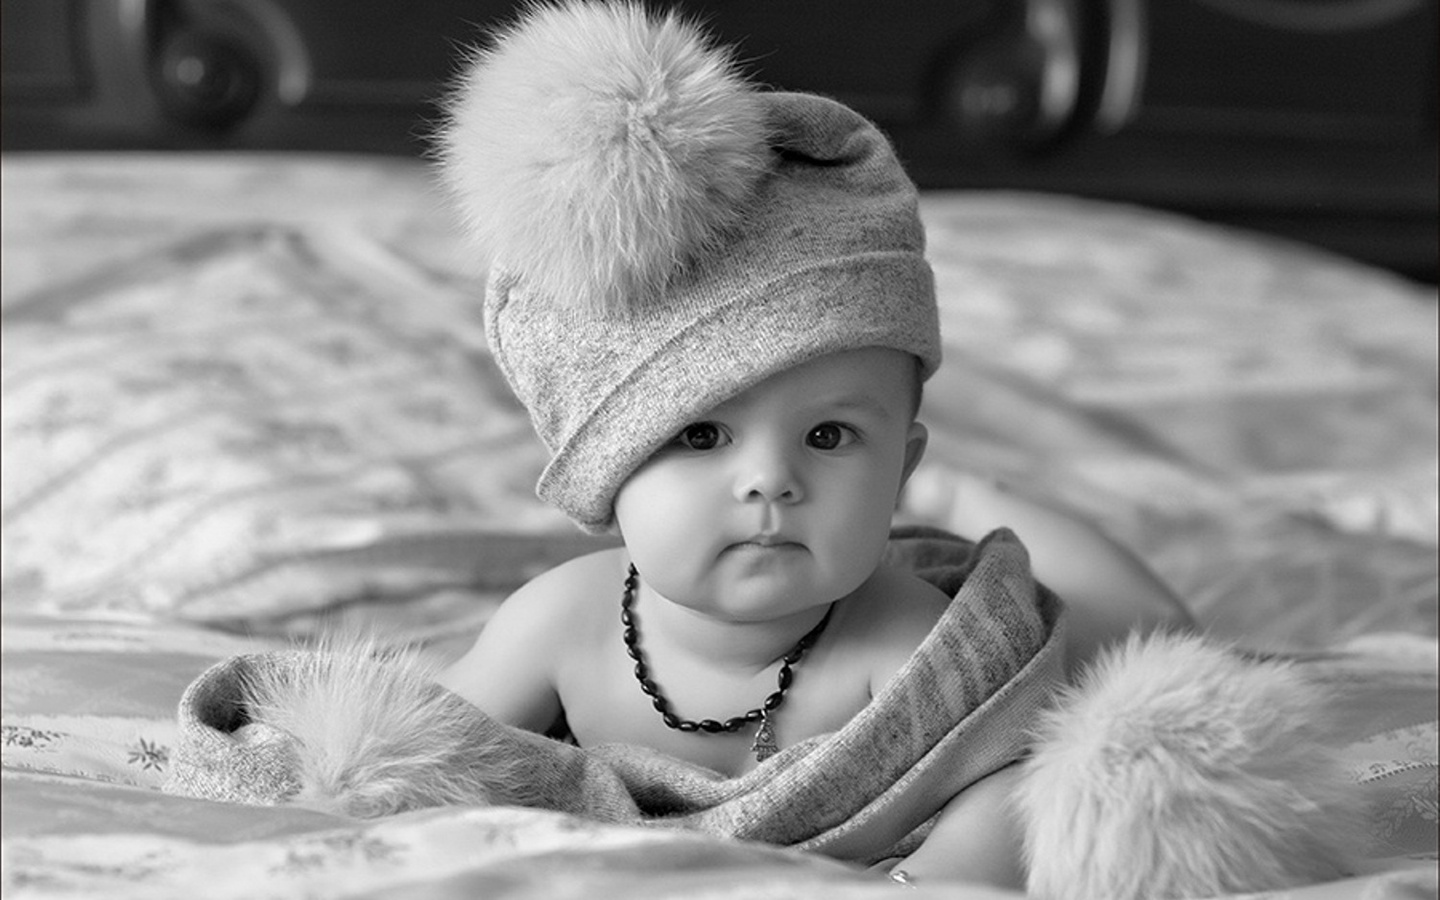 Cute Baby With Hat Wallpapers: Black And White Baby With Hat Wallpapers